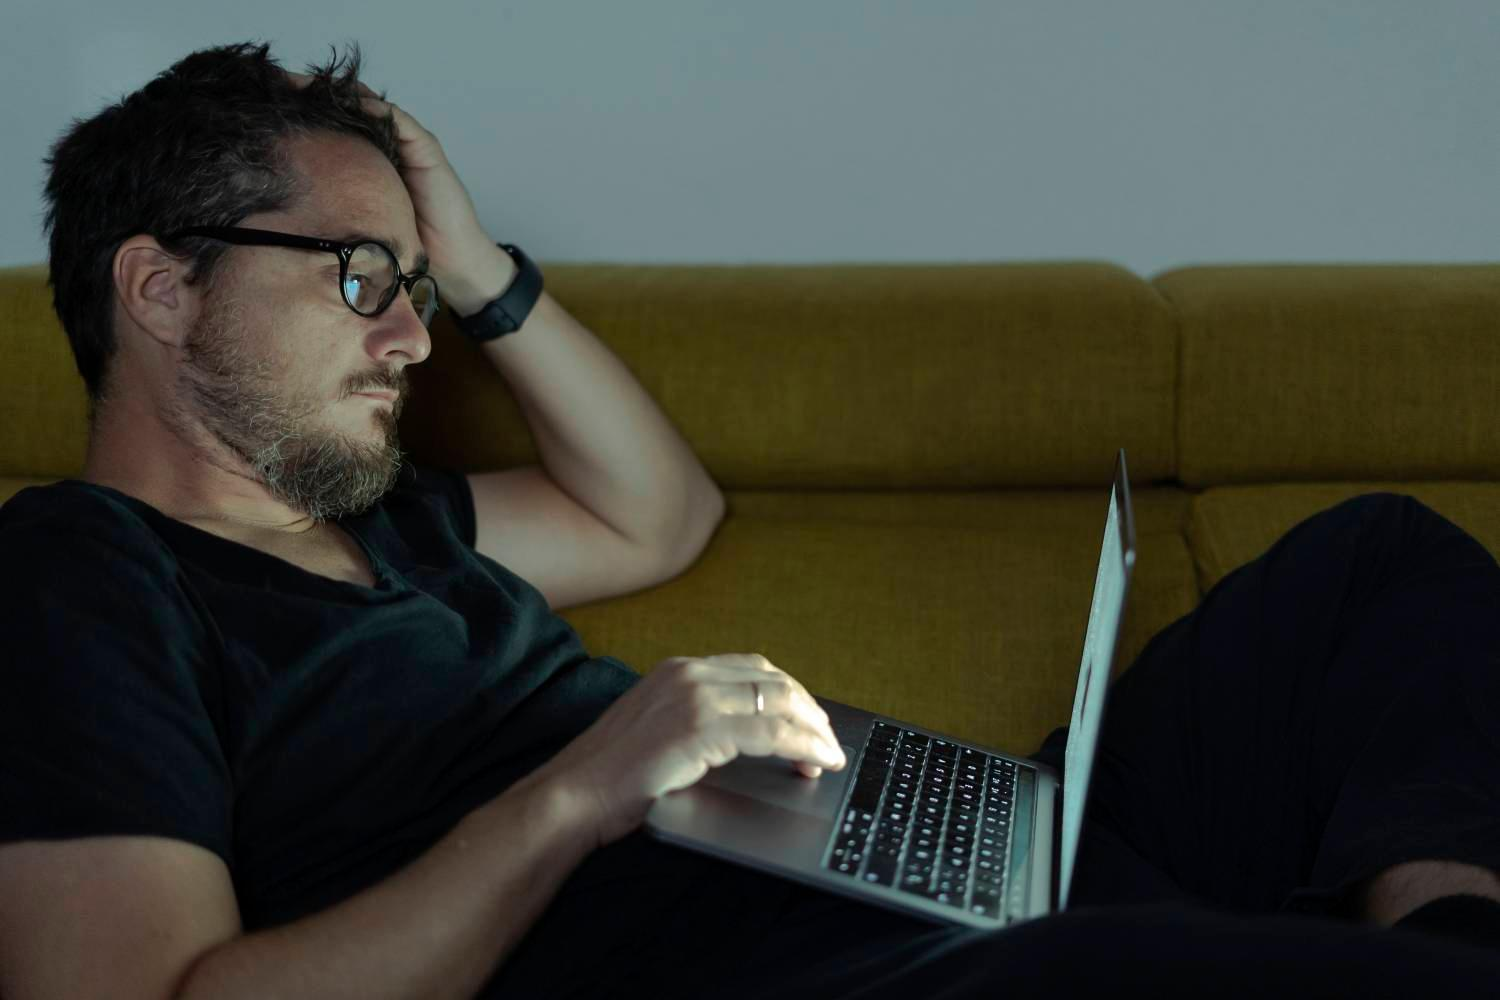 Getty image 1131380657, man lying on couch using laptop at night